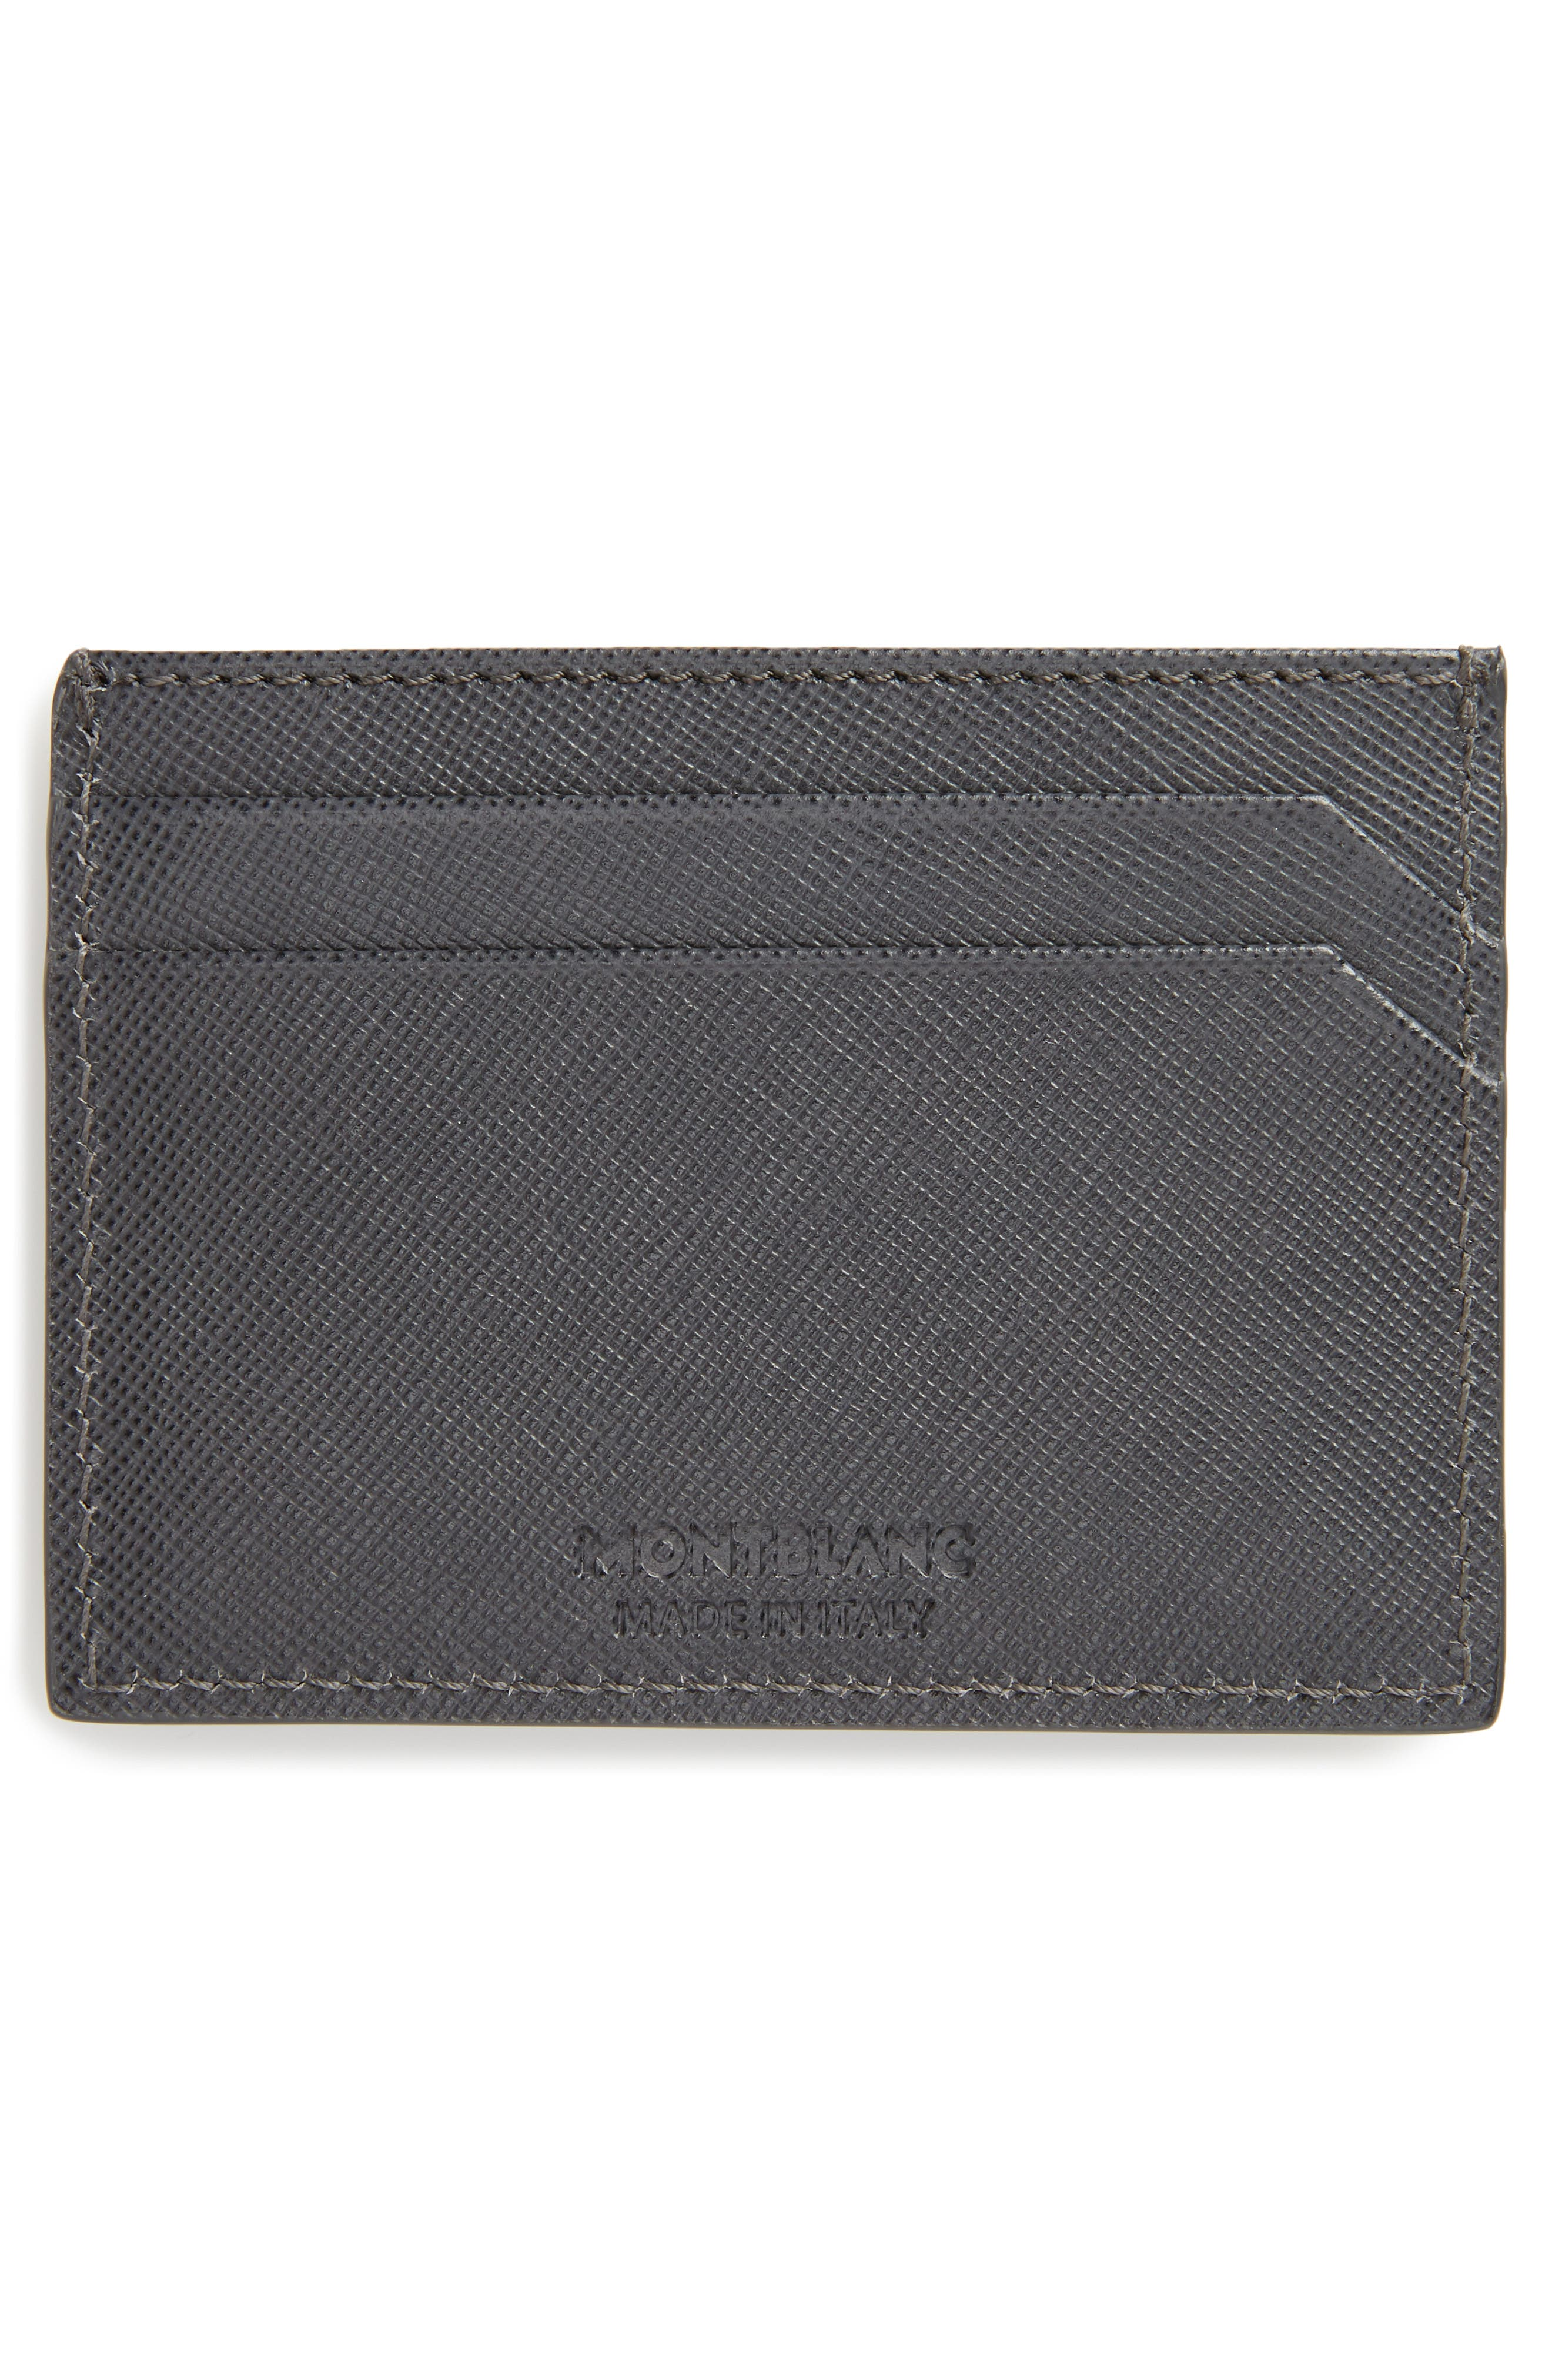 MONTBLANC, Sartorial Leather Card Case, Alternate thumbnail 2, color, DARK GREY